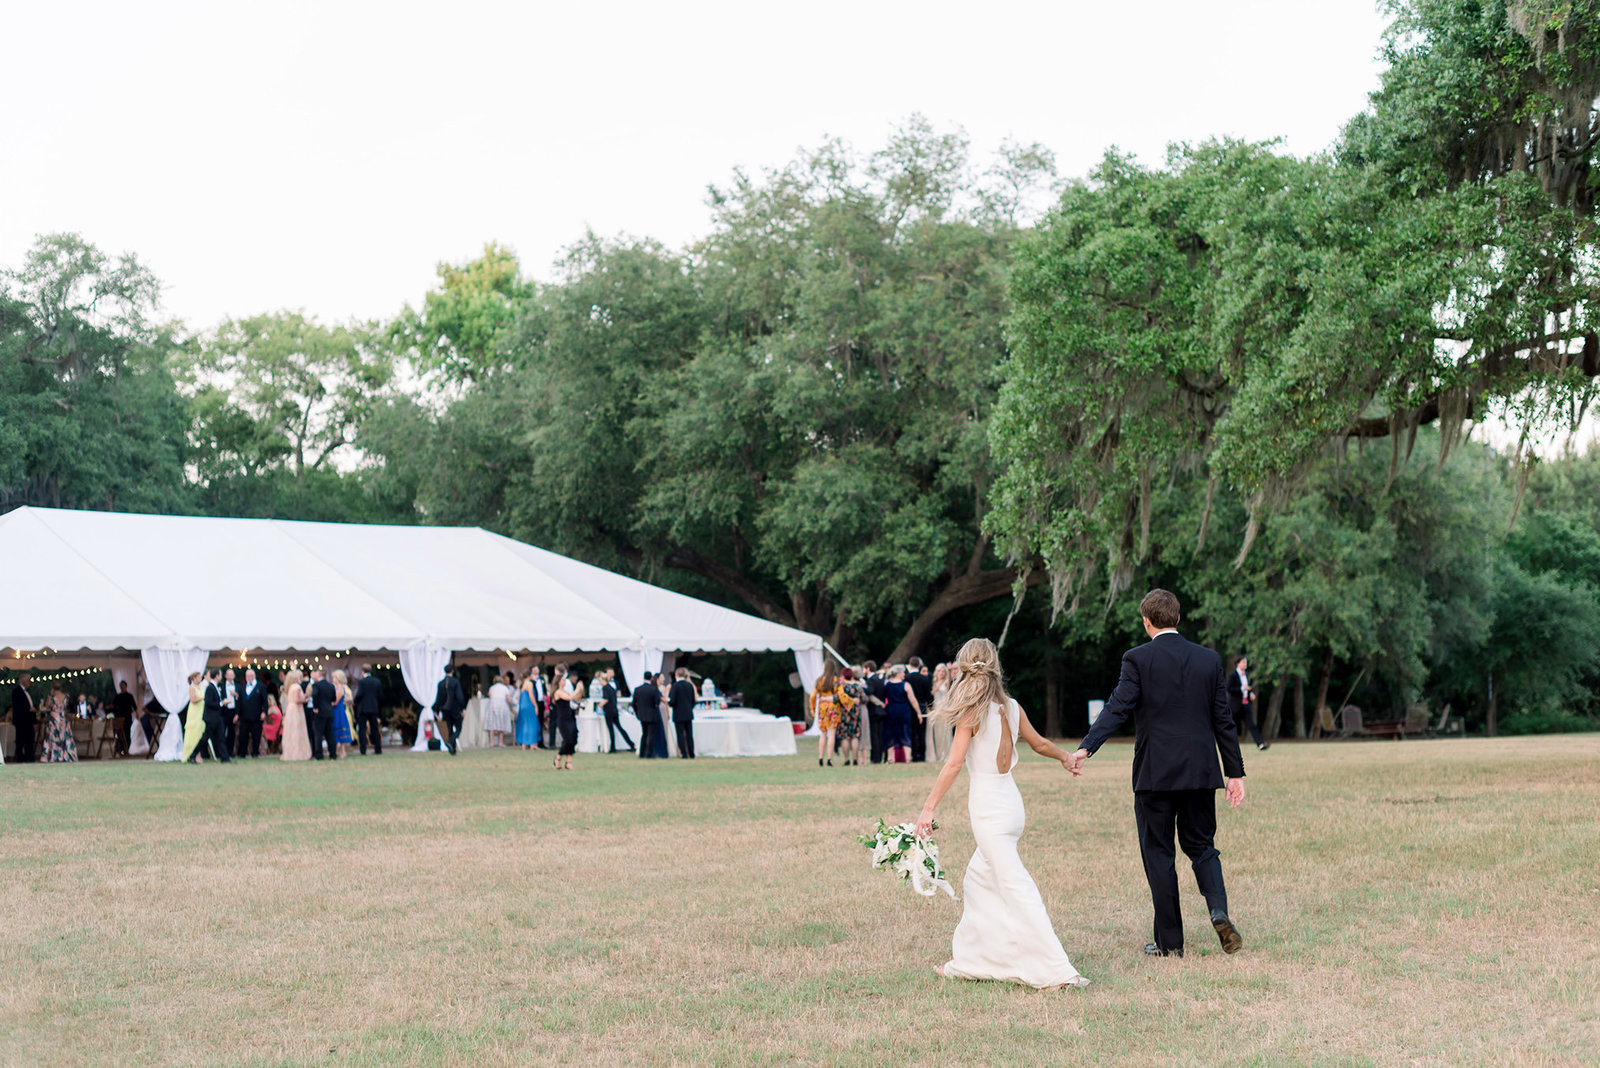 20190526-Pura-Soul-Photo-Caroline-Daniel-Wedding-814